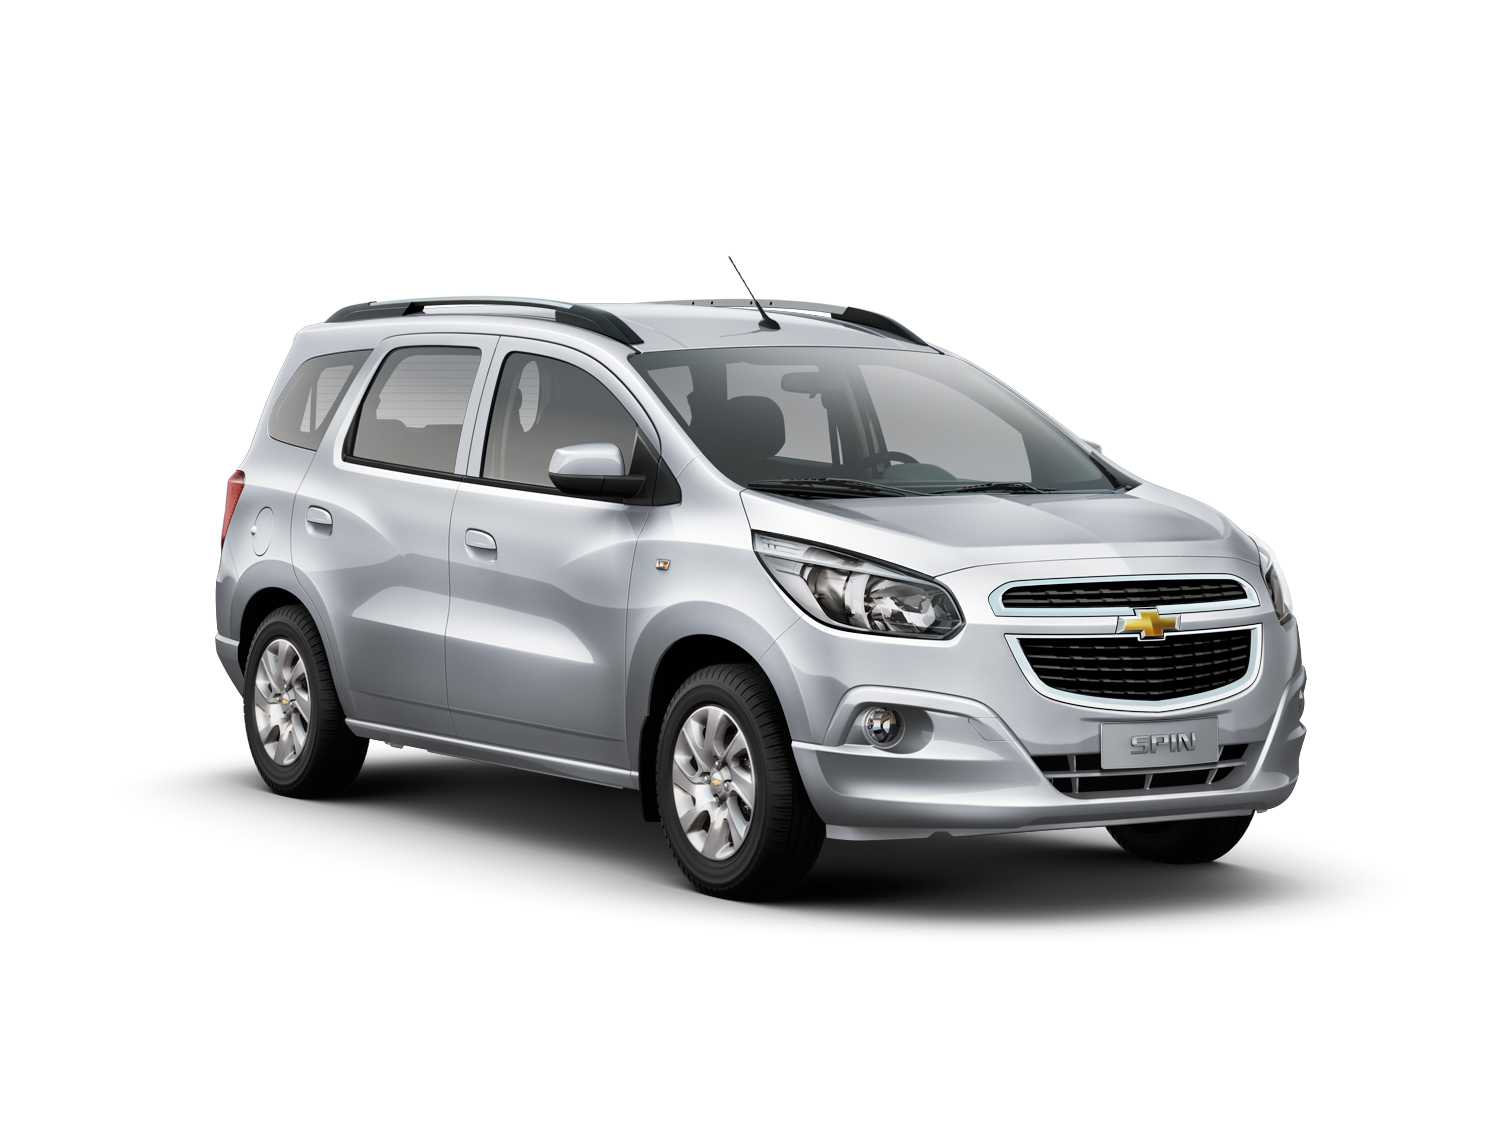 Chevrolet Spin Exterior Free Download Image Of